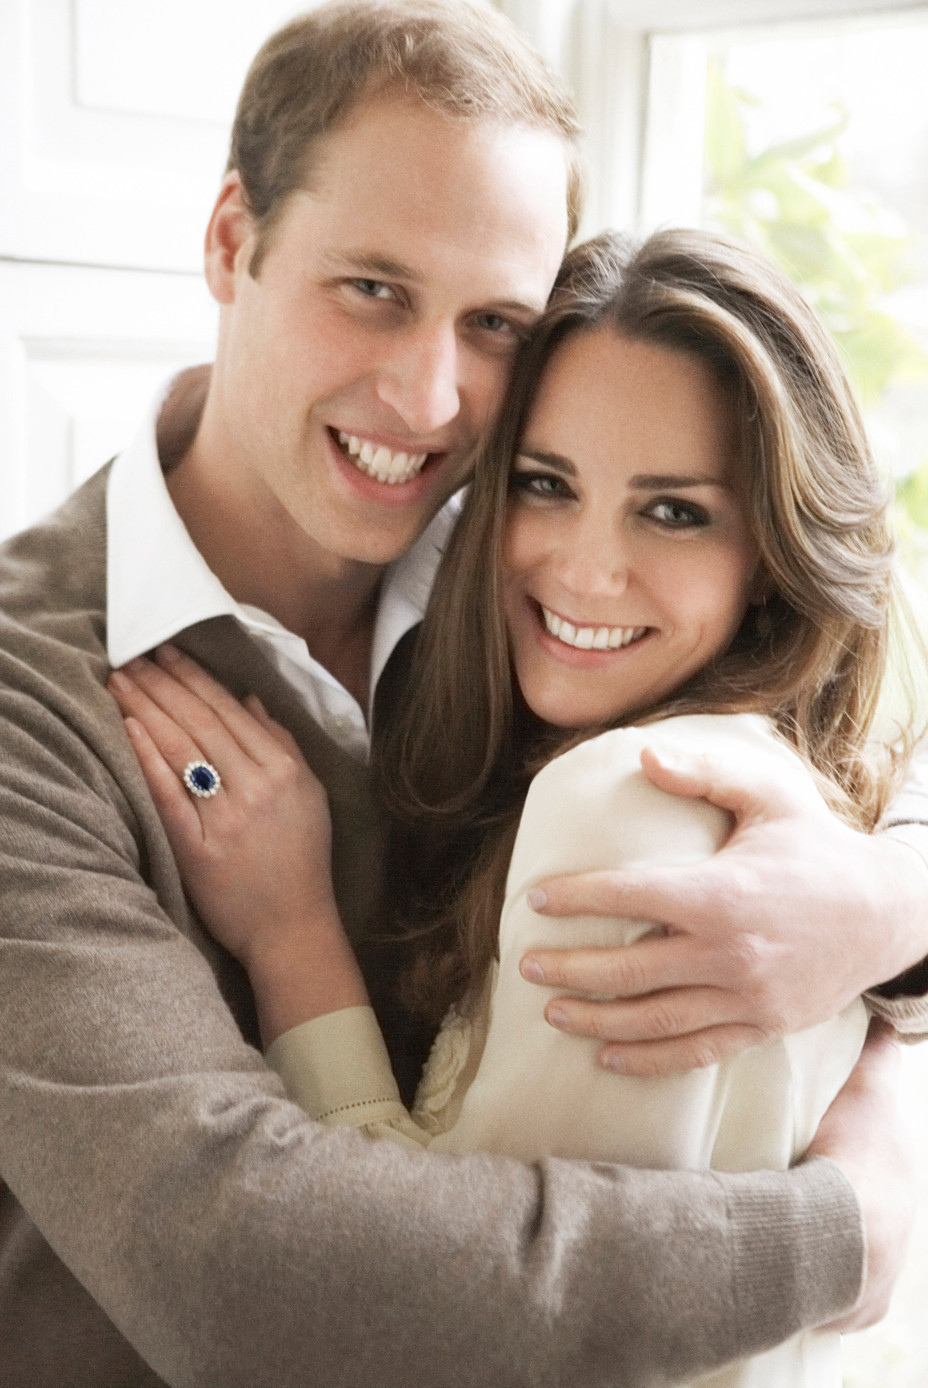 Prince william kate middleton official engagement photos released